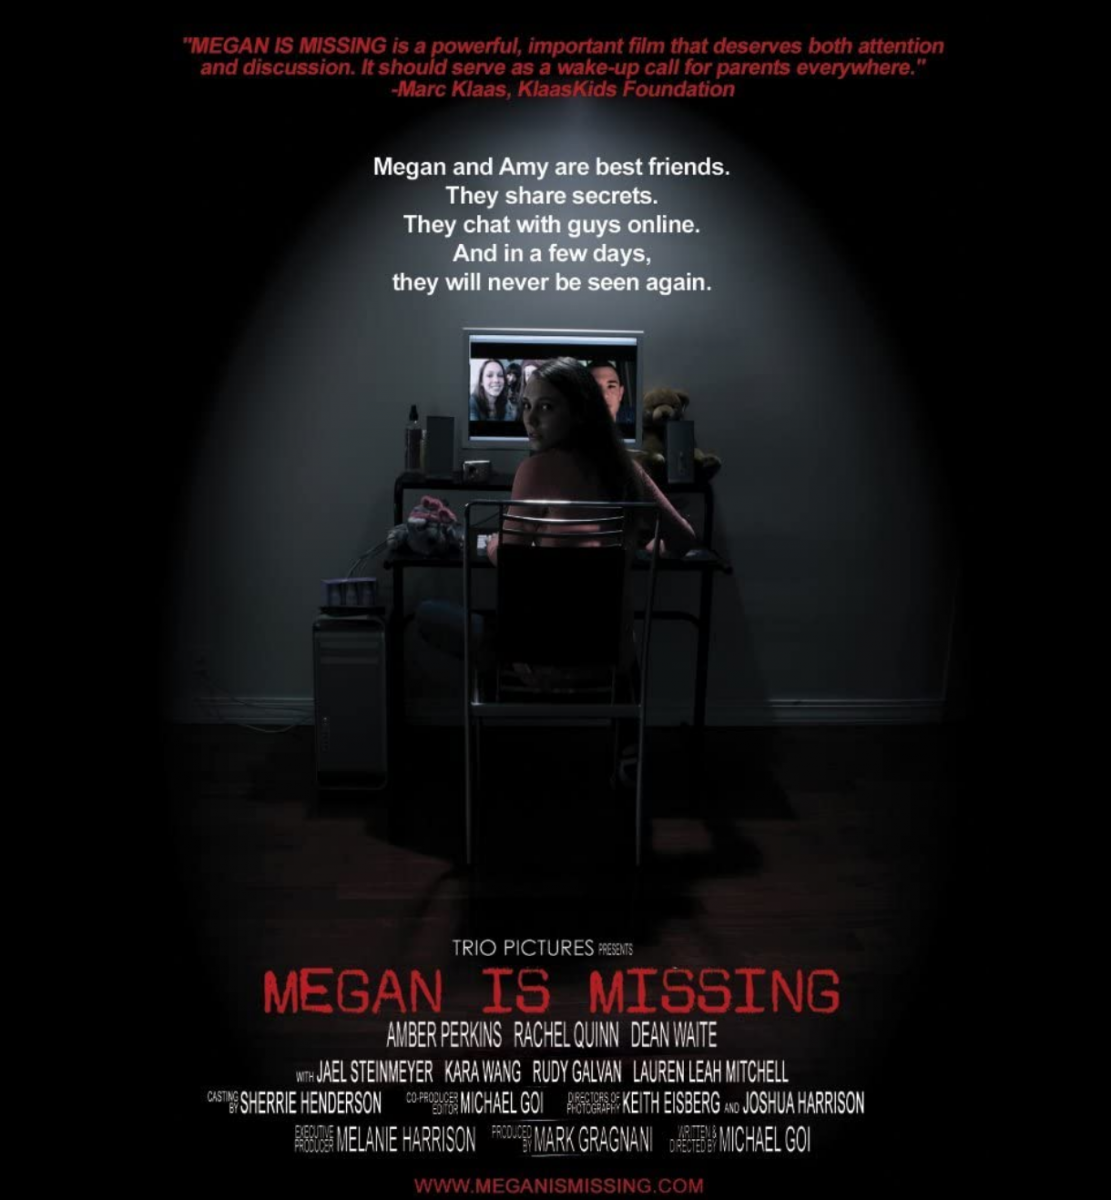 Where To Watch Megan Is Missing Online Nearly 10 Years After Its Release